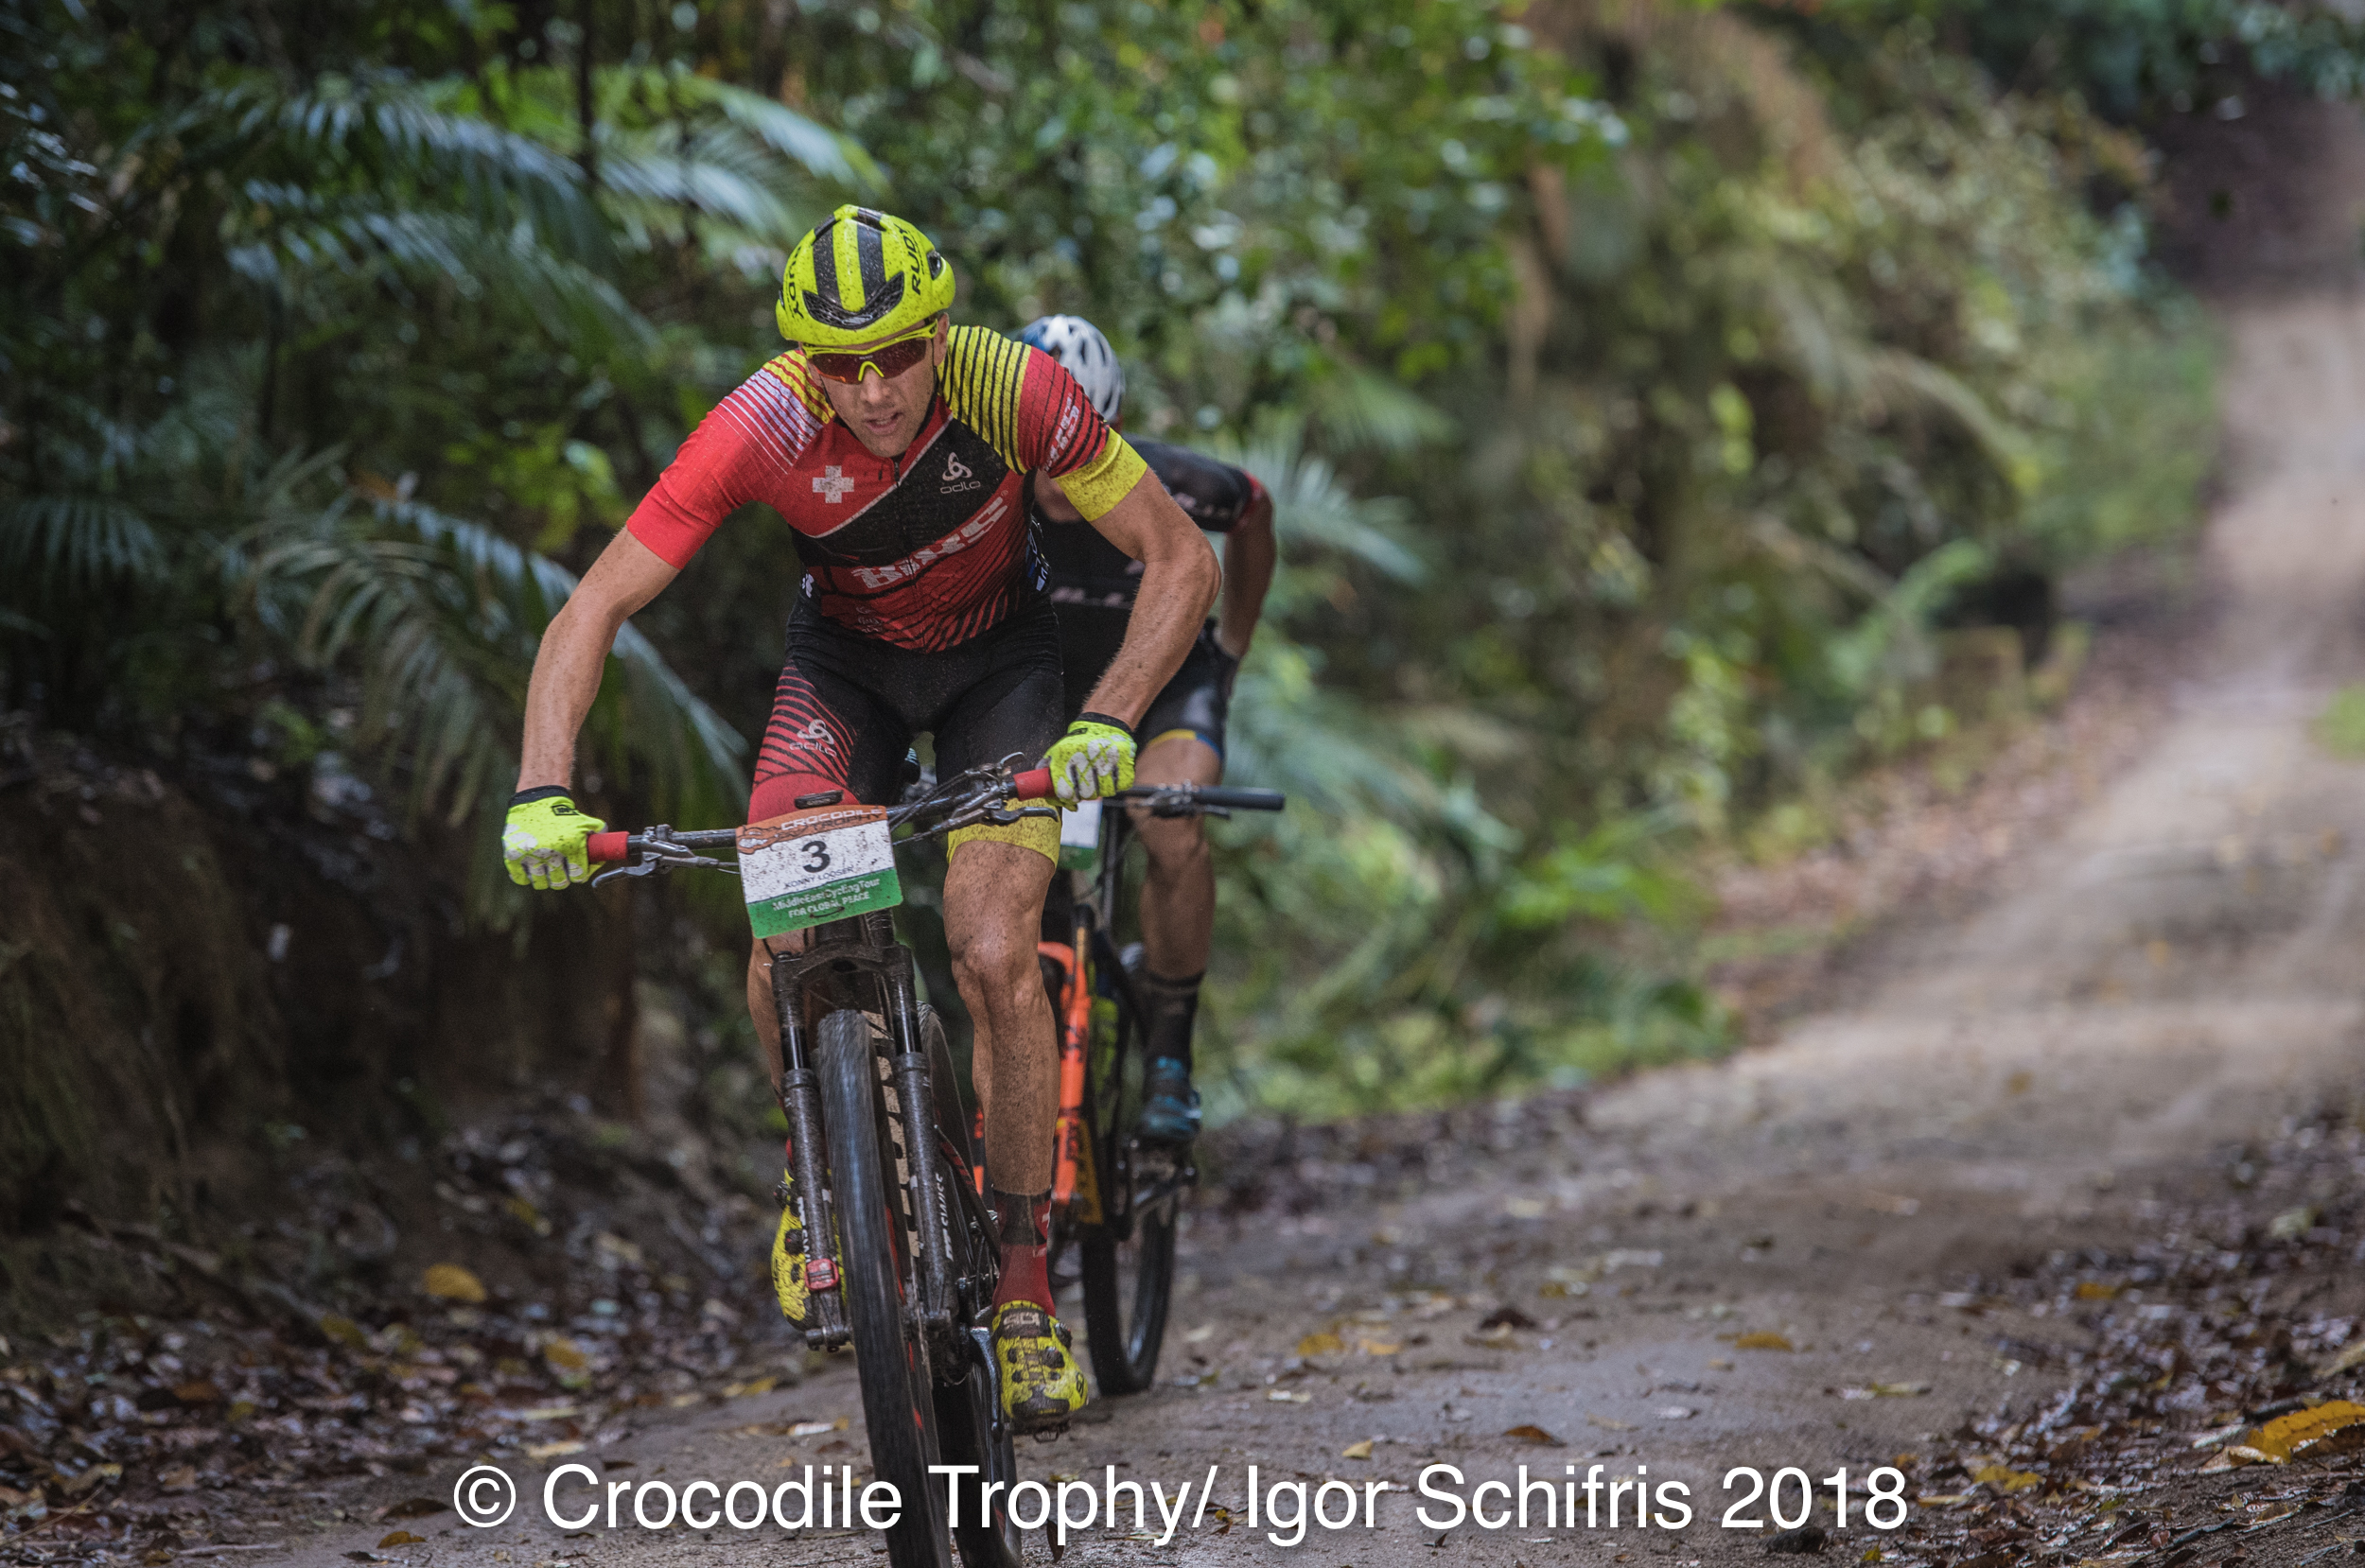 Kenny Looser en Sarah White winnen in tweede rit Crocodile Trophy